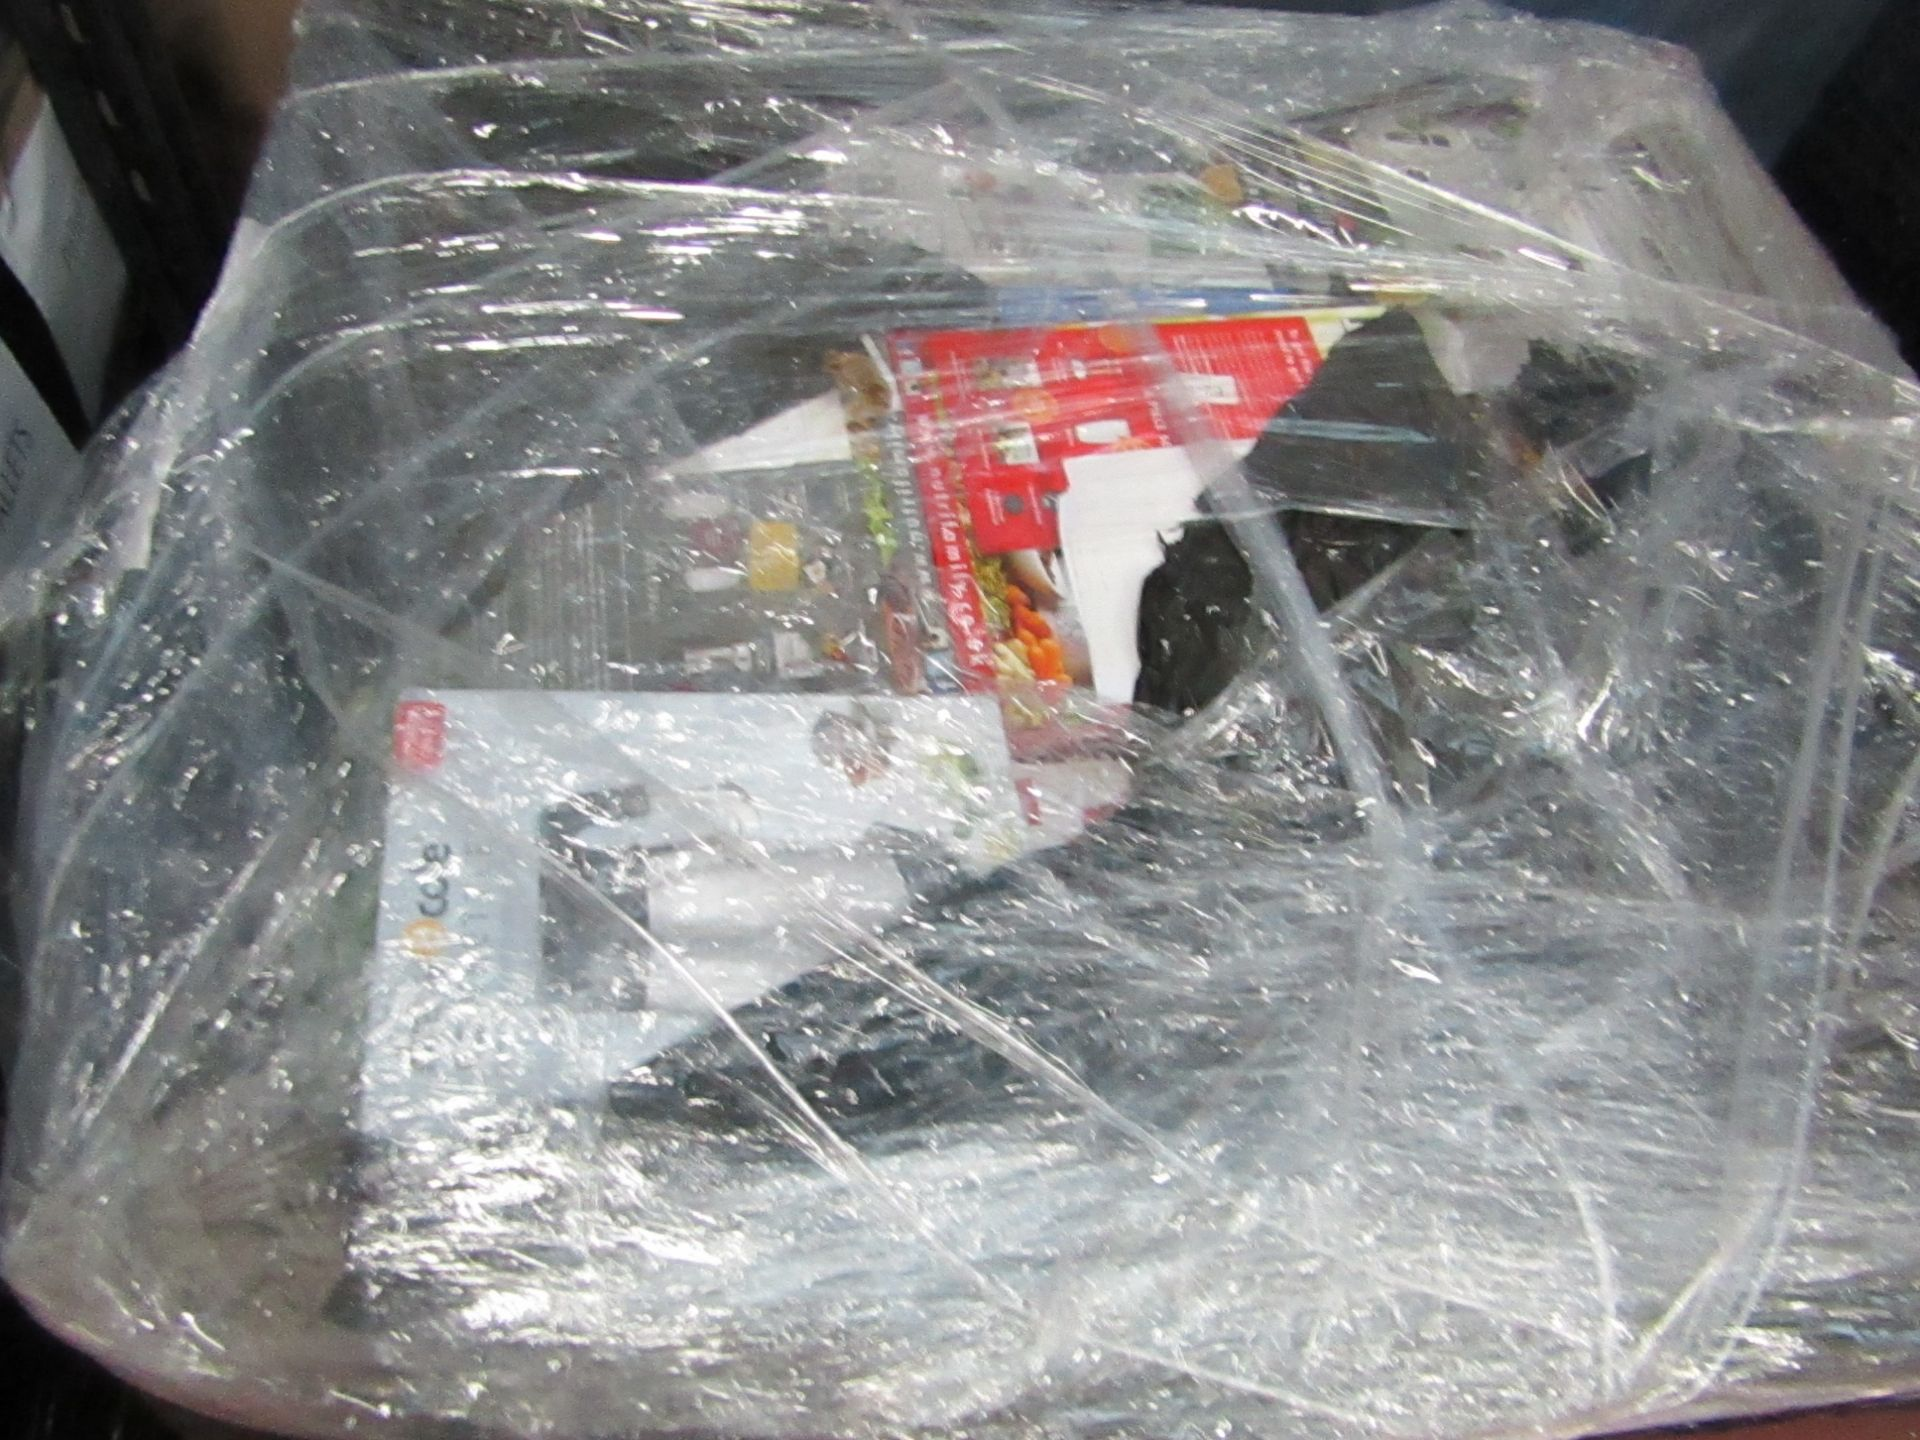 Lot 25 - | APPROX 29X | THE PALLET CONTAINS NUTRI BULLET, REDI KETTLE AND MORE | BOXED AND UNCHECKED | NO